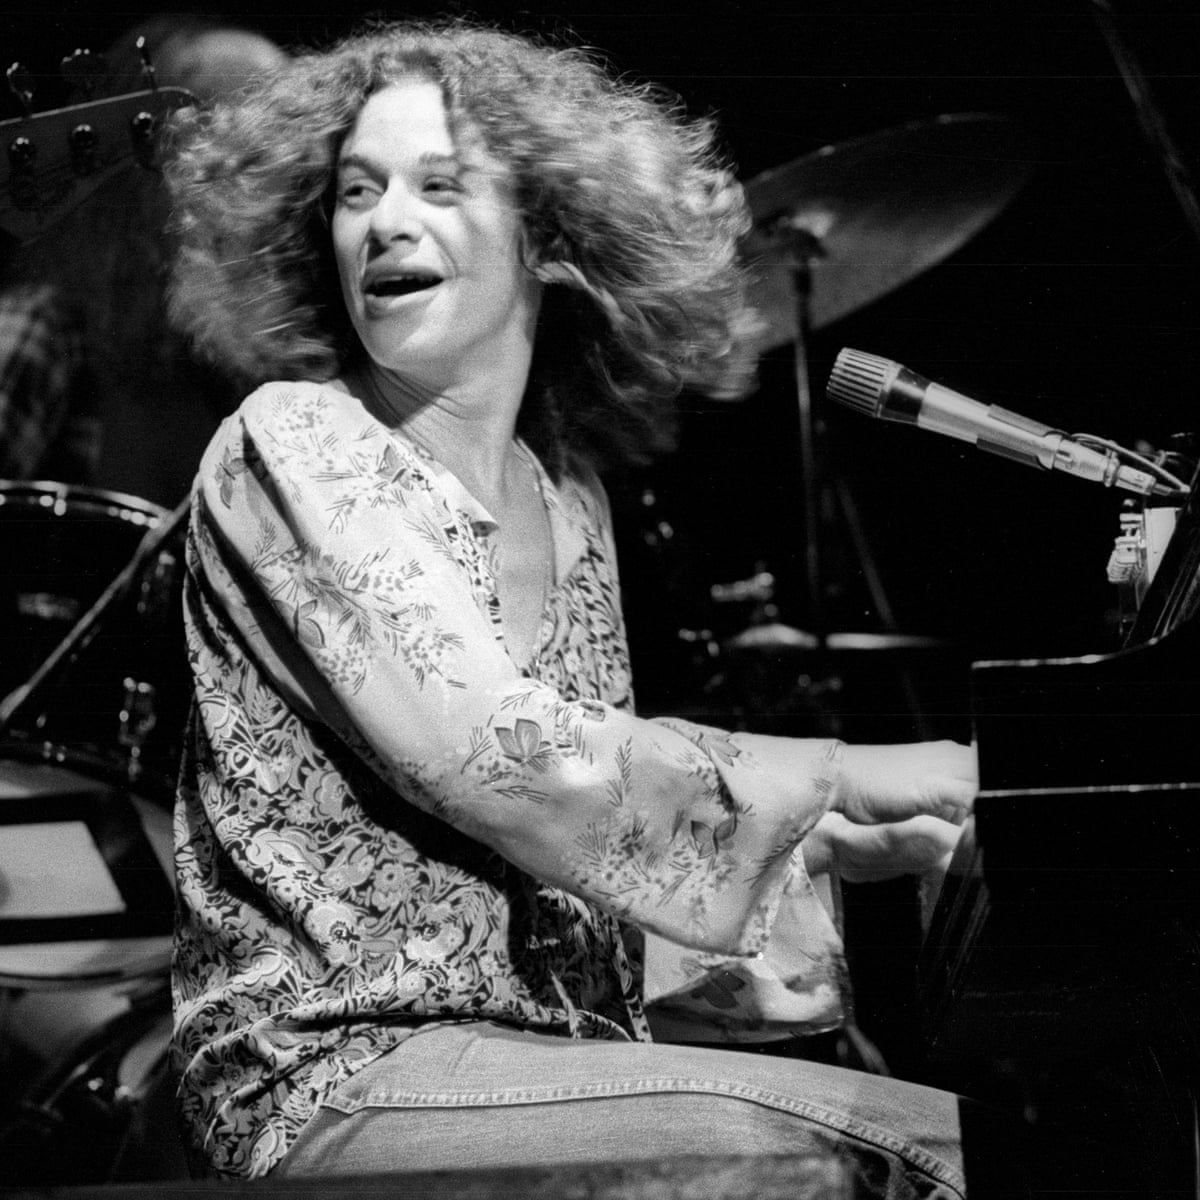 Carole King on songwriting in the age of Trump: 'I am the honest  opposition' | Music | The Guardian